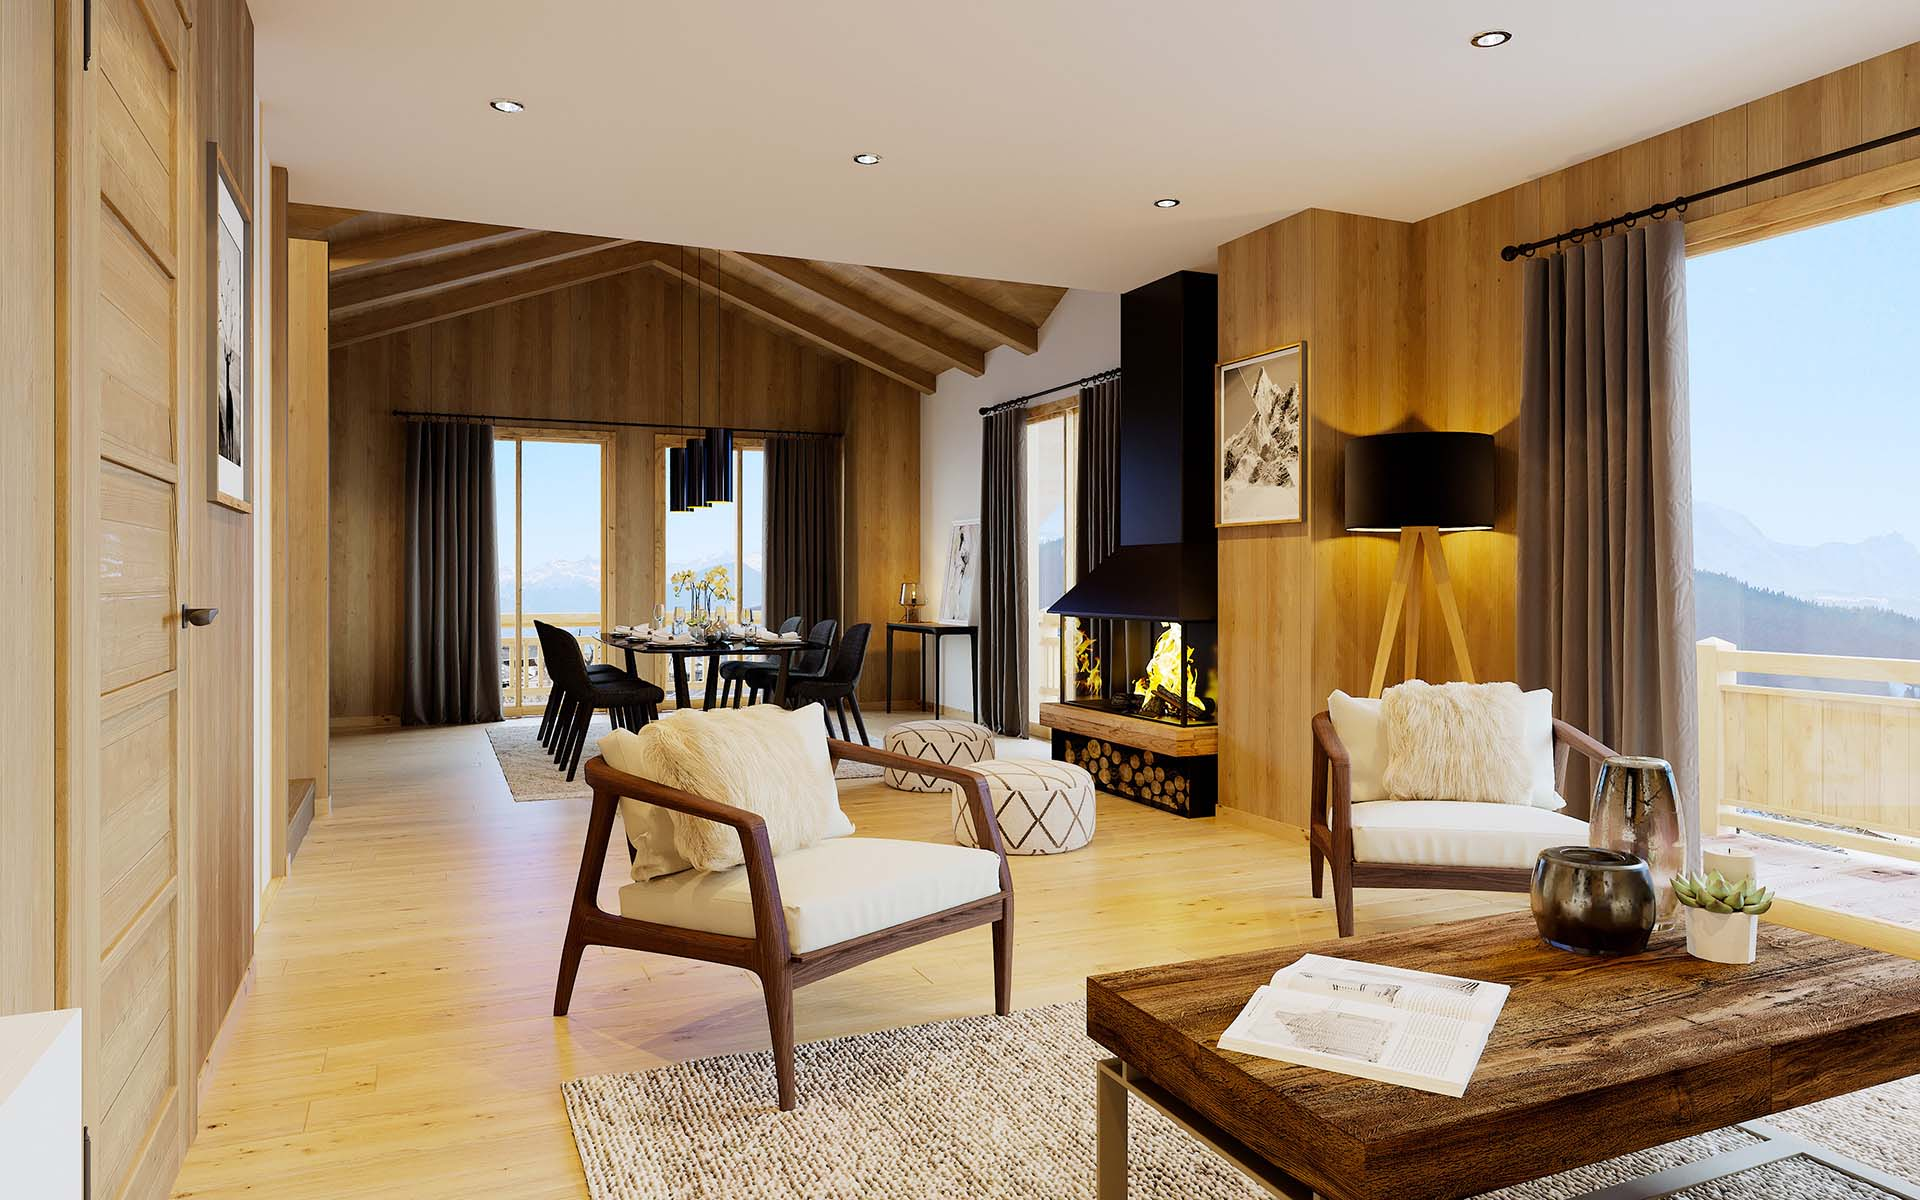 Creation of 3D computer generated images of a luxurious chalet for real estate promotion.